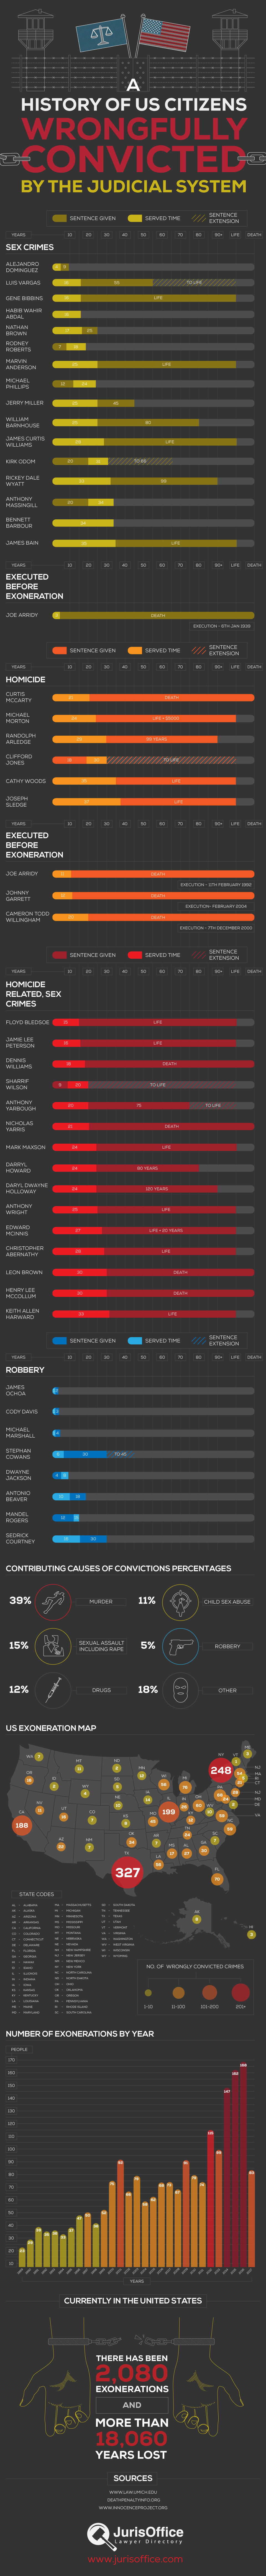 The US Judicial Systems Unpardonable History of Wrongful Convictions - Infographic